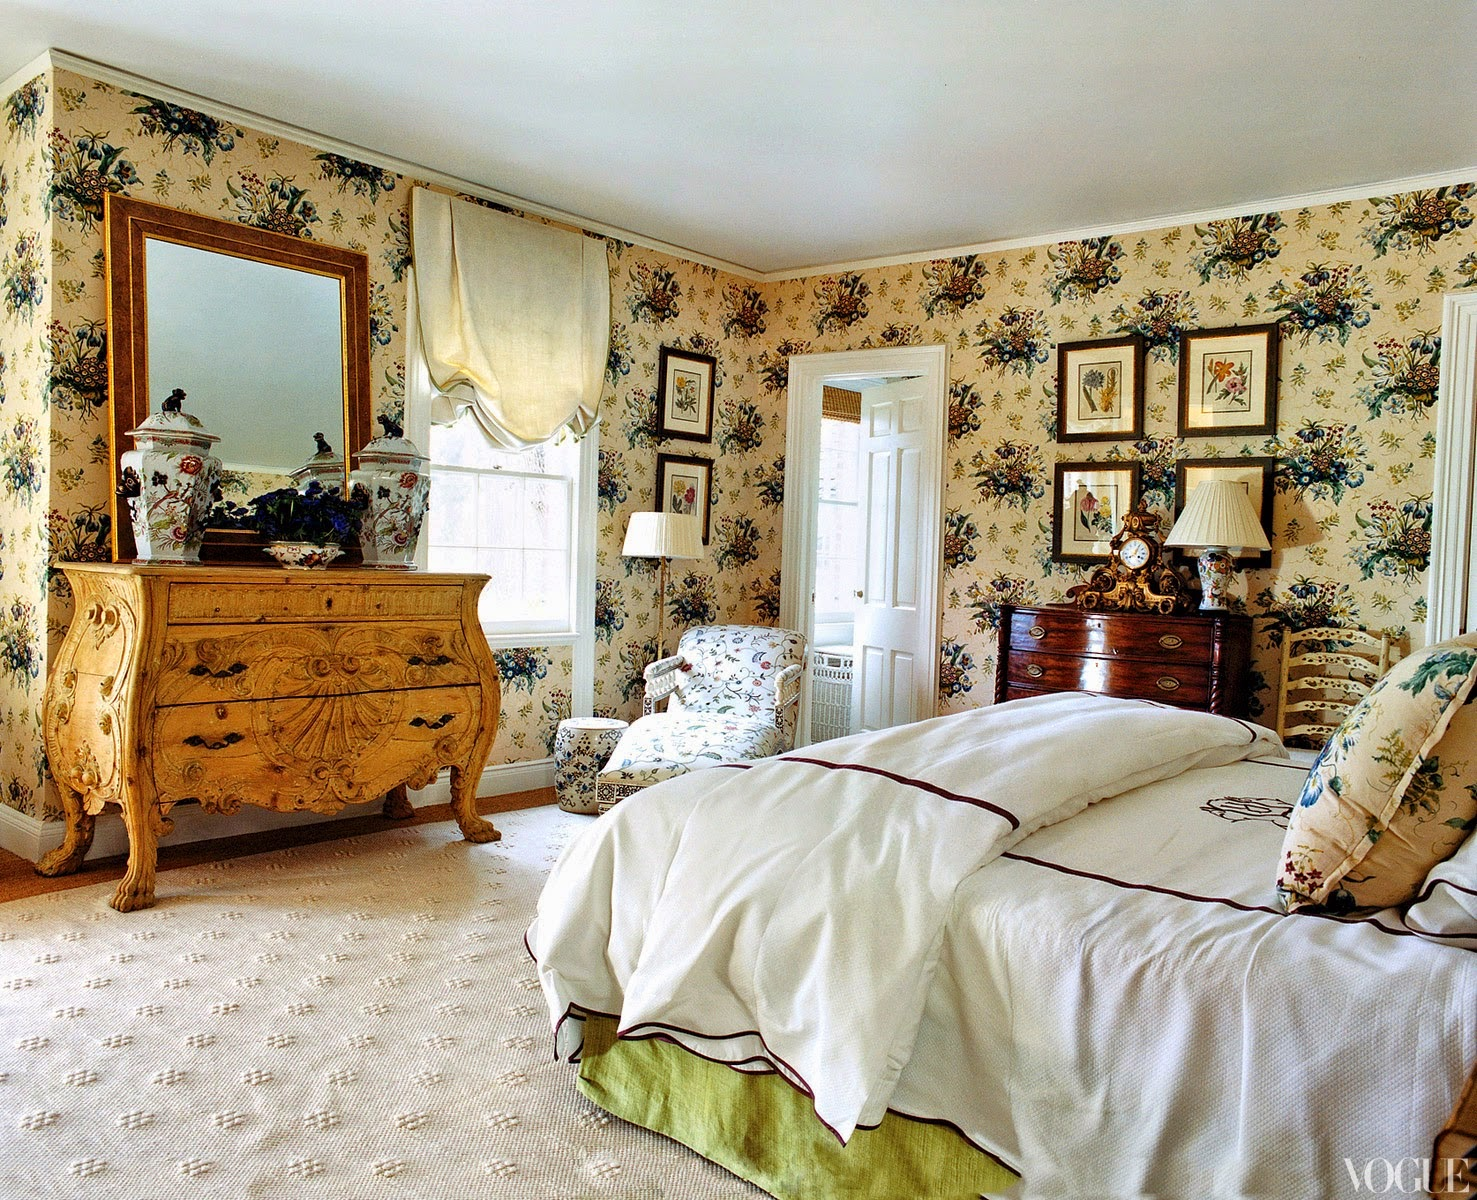 Preppy Bedroom. The Ivy League Preppy bedroom many times borders on the New England  Colonial style with four posters and canopies Eye For Design Decorate In Style